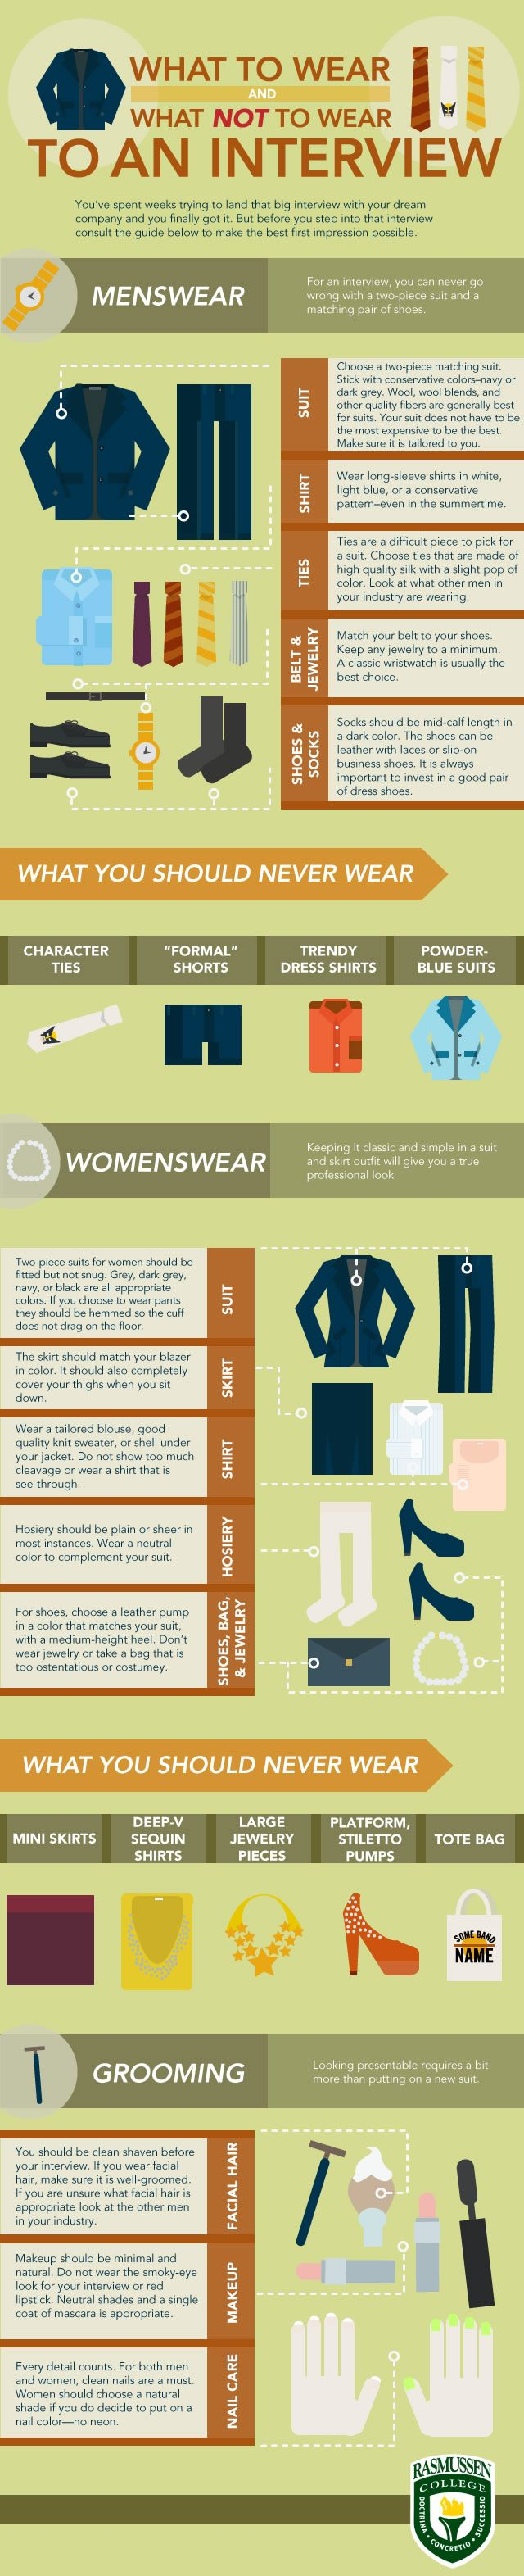 What to Wear to an Interview [INFOGRAPHIC] on http://theundercoverrecruiter.com